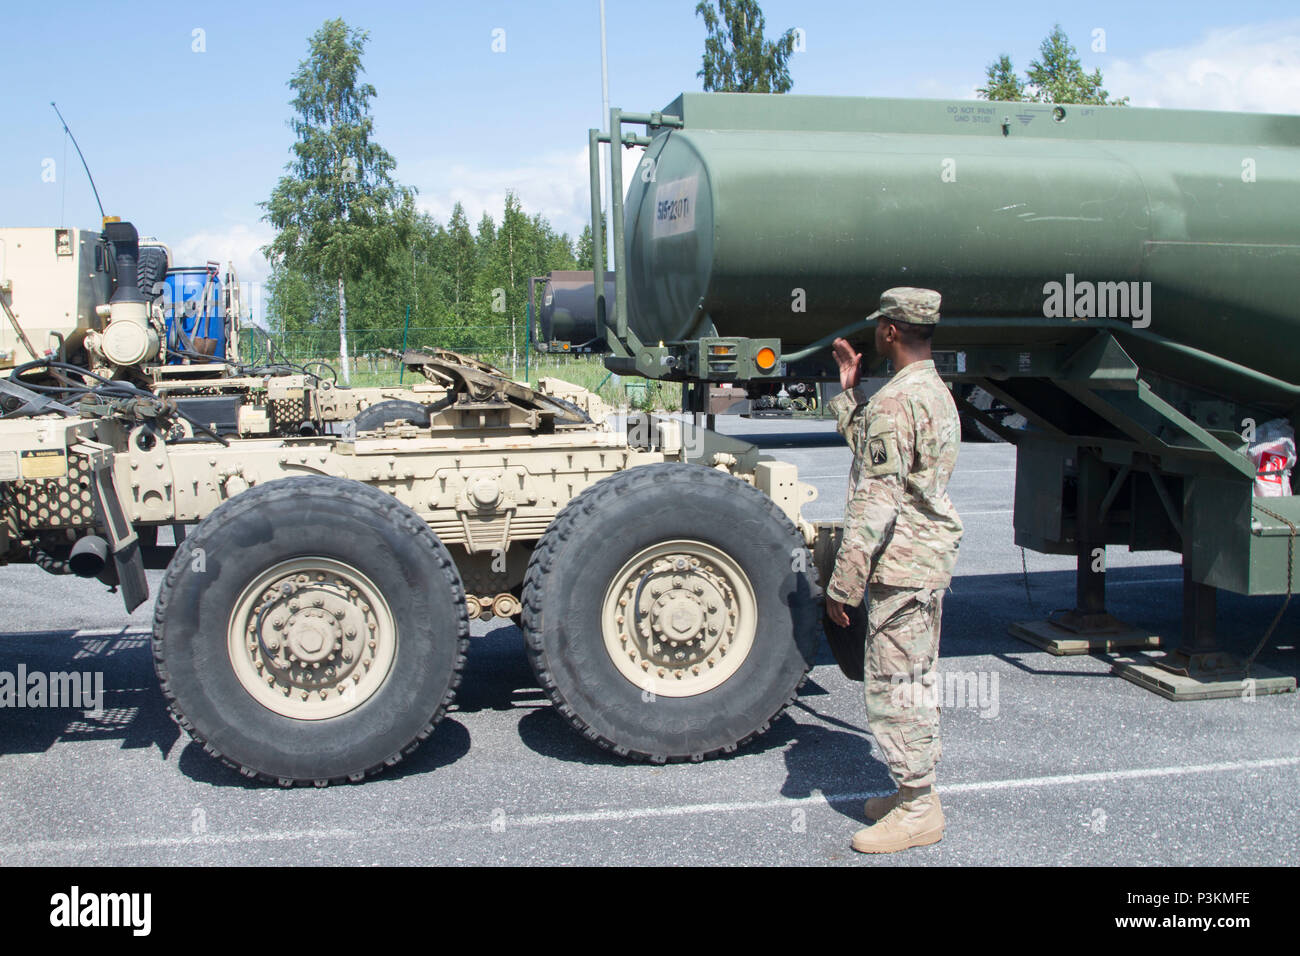 U S Army Spc Travontis Bell A Motor Transport Operator And A Native Of Macon Ga Assigned To The 515th Transport Co 39th Battalion 16th Sustainment Brigade 21st Theater Sustainment Command Directs A